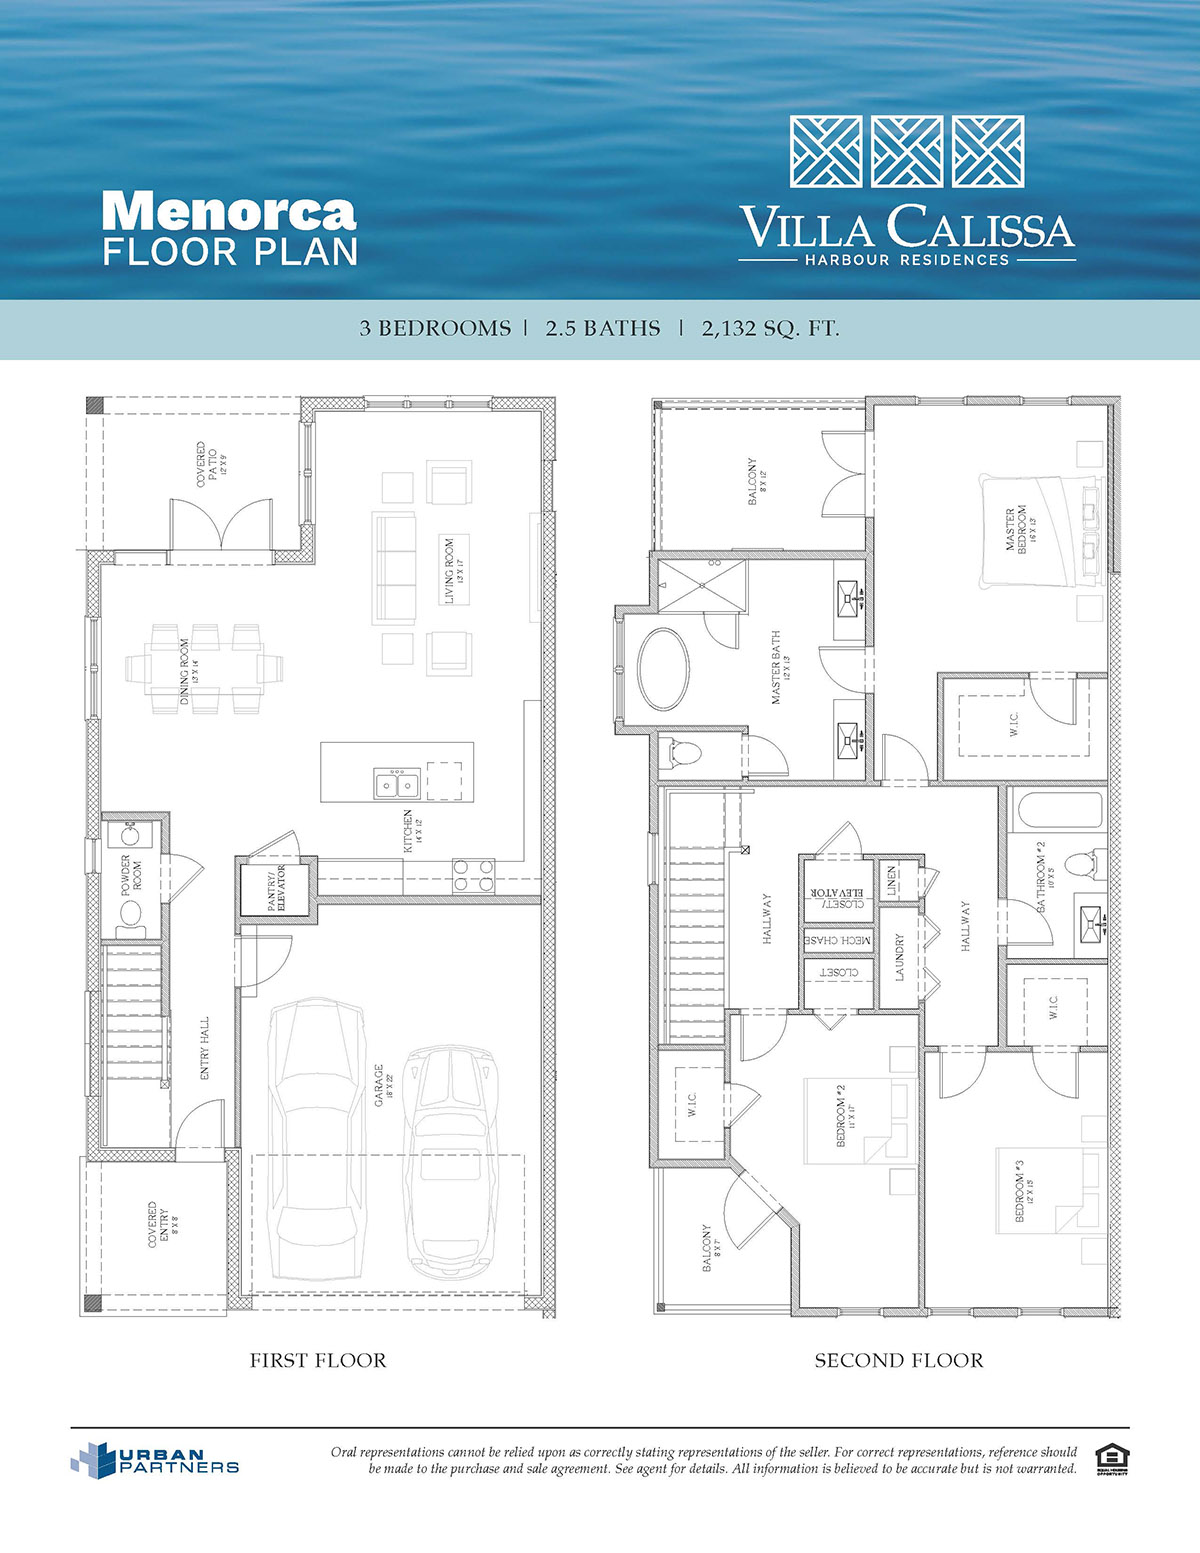 Menorca floor plan at Villa Calissa